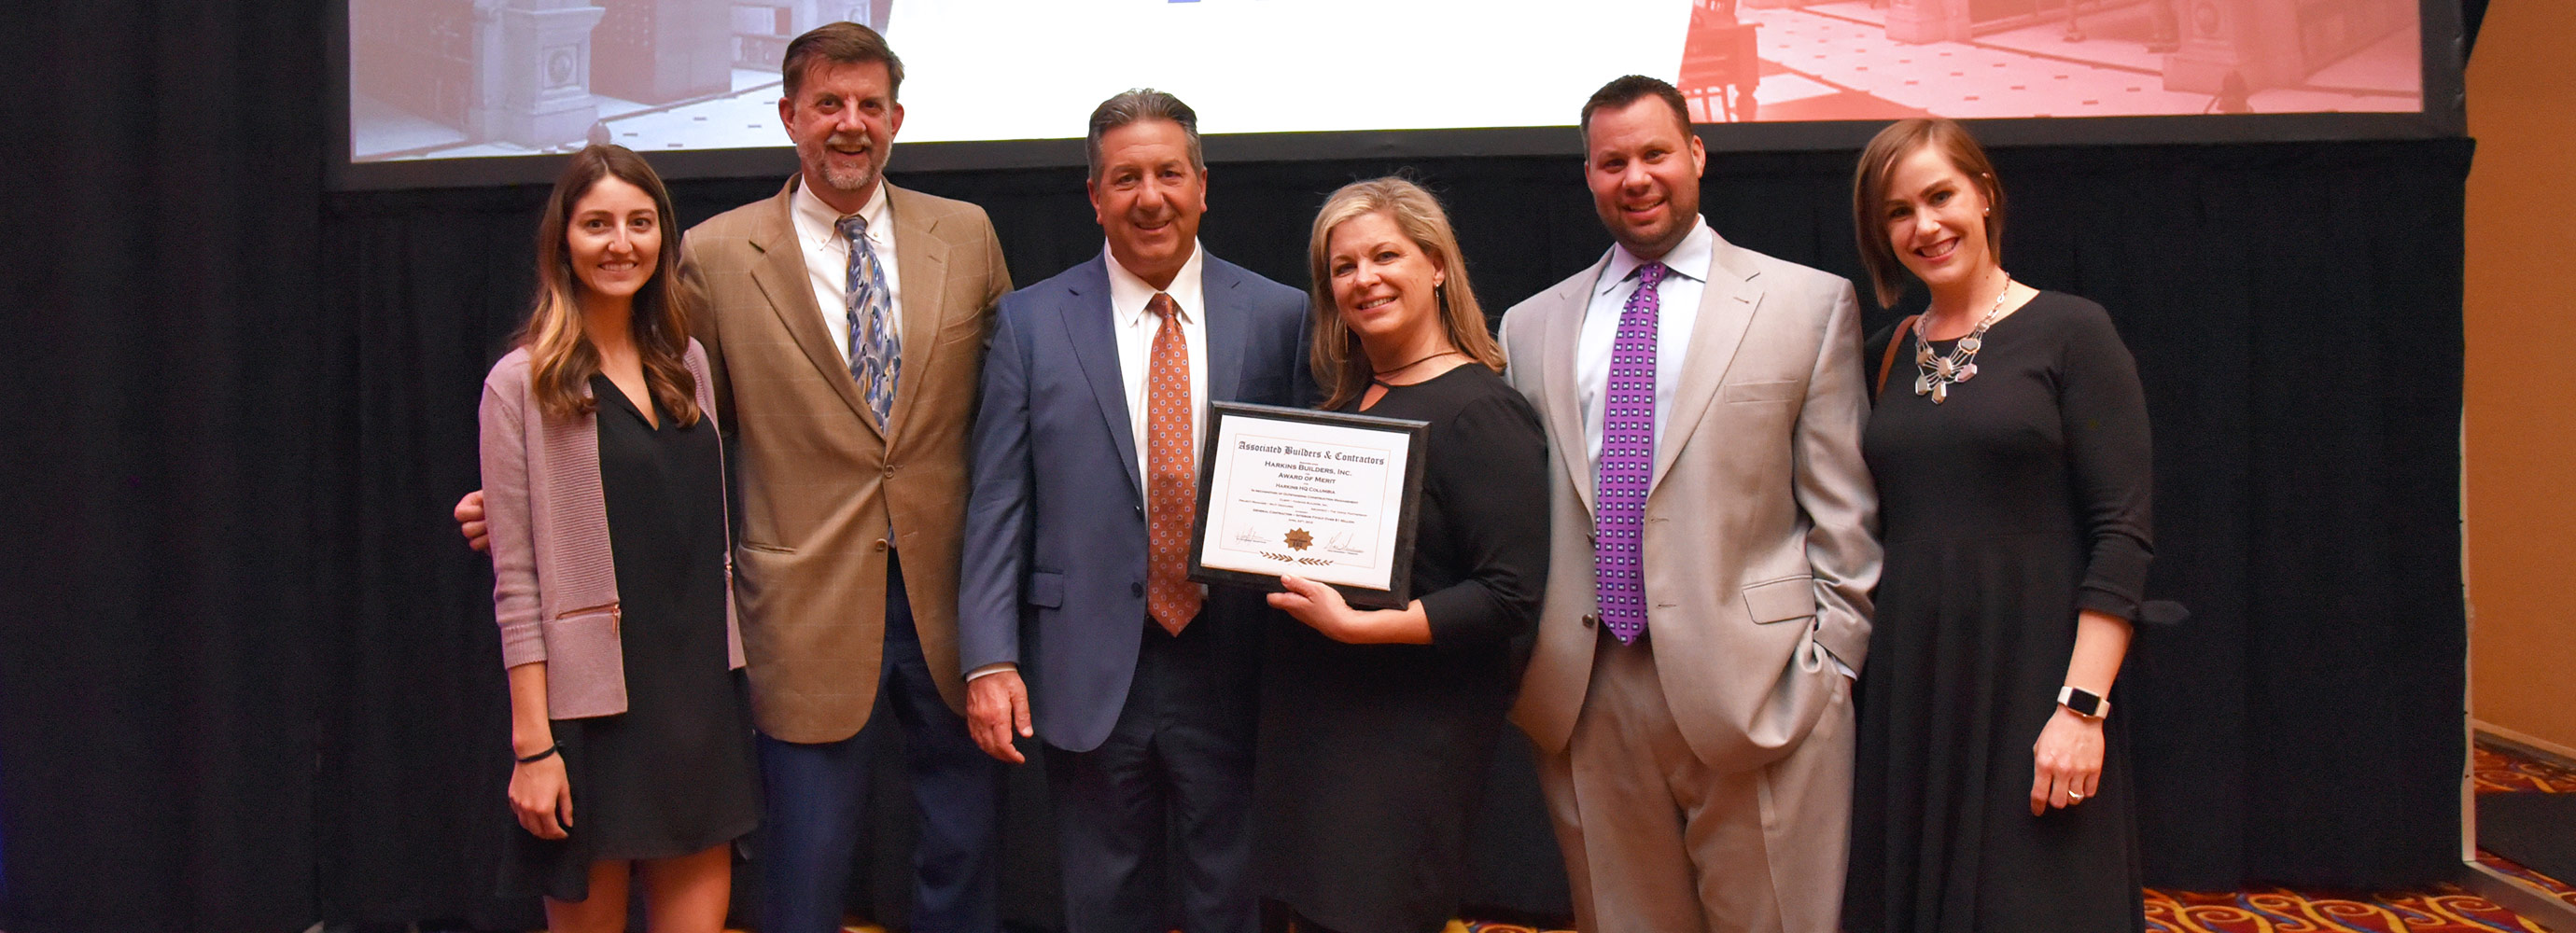 Harkins accepting award of Merit for HQ office